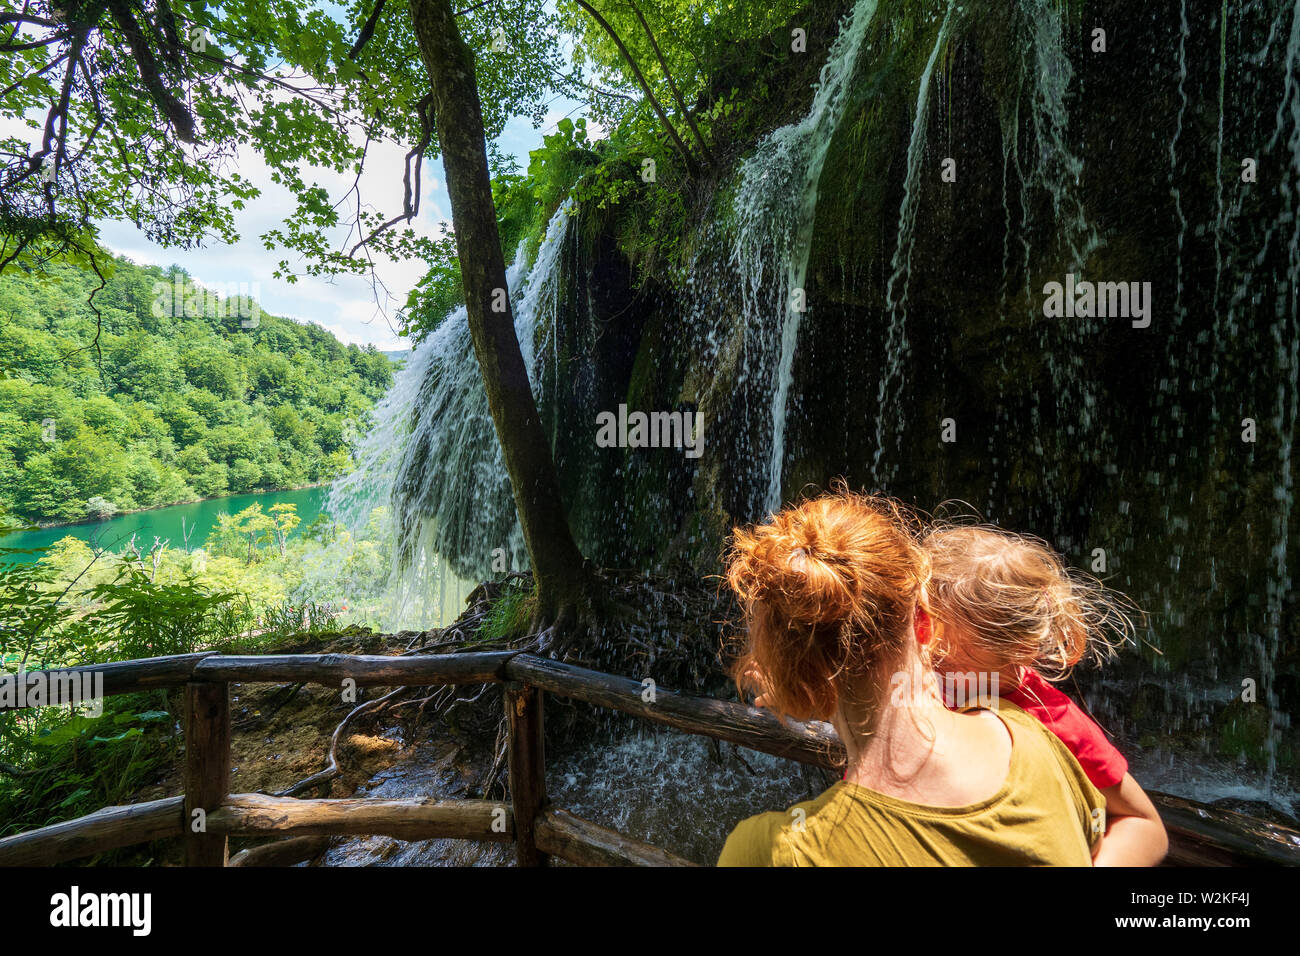 Mother carrying 3 years old girl in front of a rock face where pure fresh water rushing down the edge - Plitvice Lakes National Park in Croatia Stock Photo